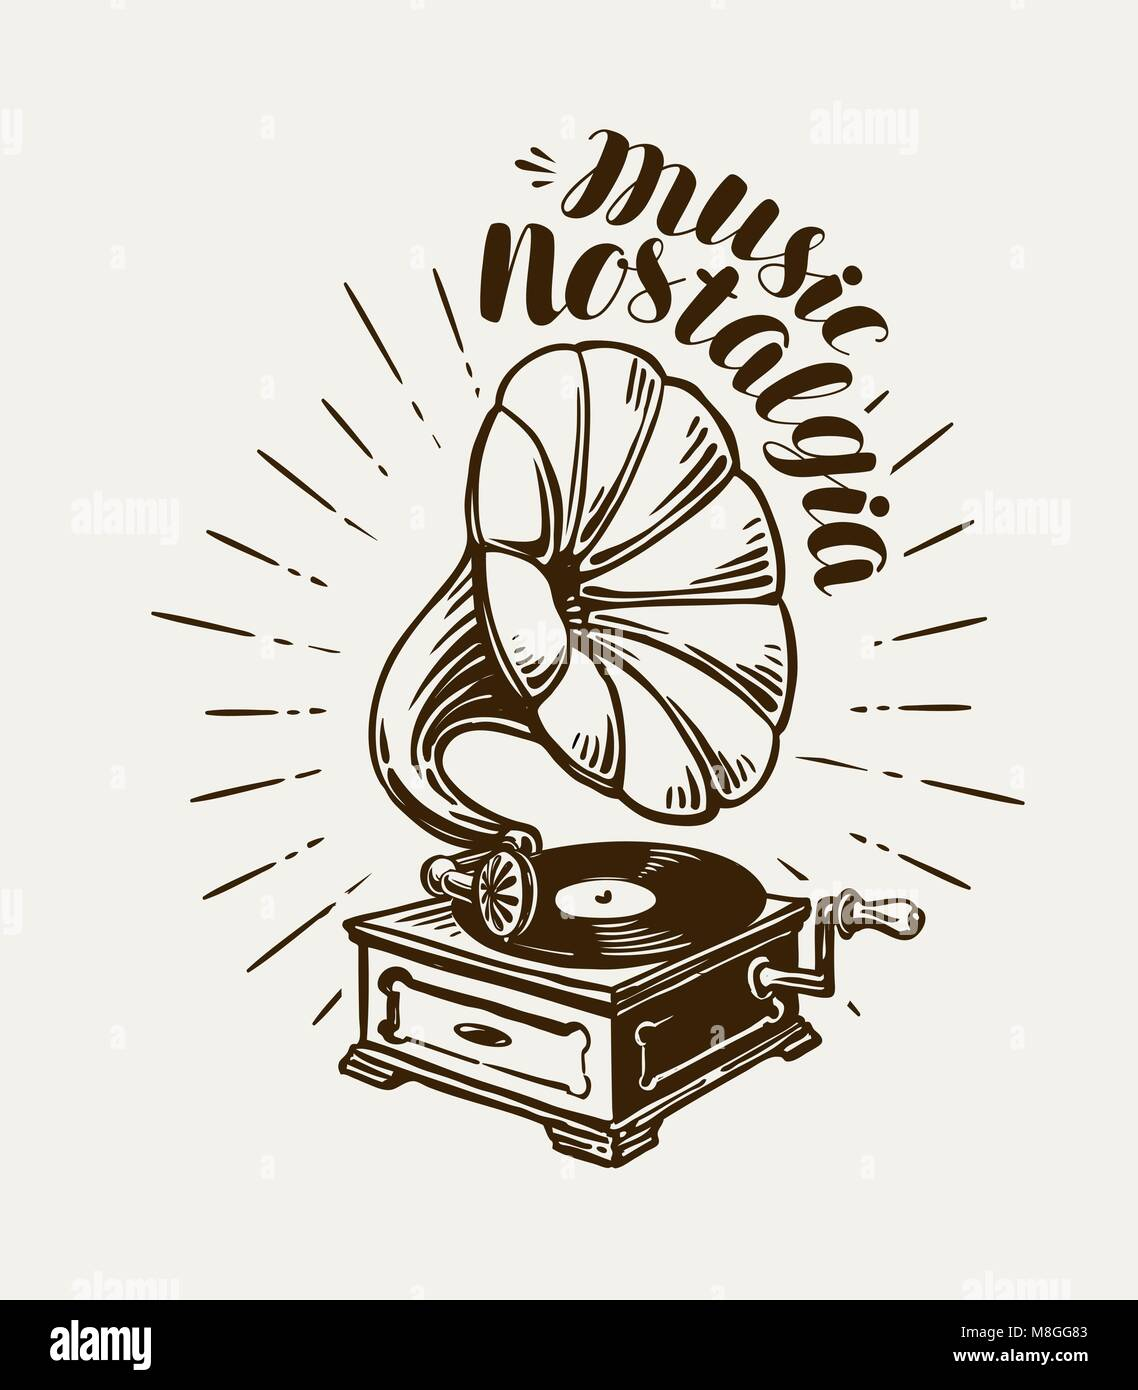 gramophone phonograph record player sketch music concept stock vector image art alamy https www alamy com stock photo gramophone phonograph record player sketch music concept lettering 177384931 html